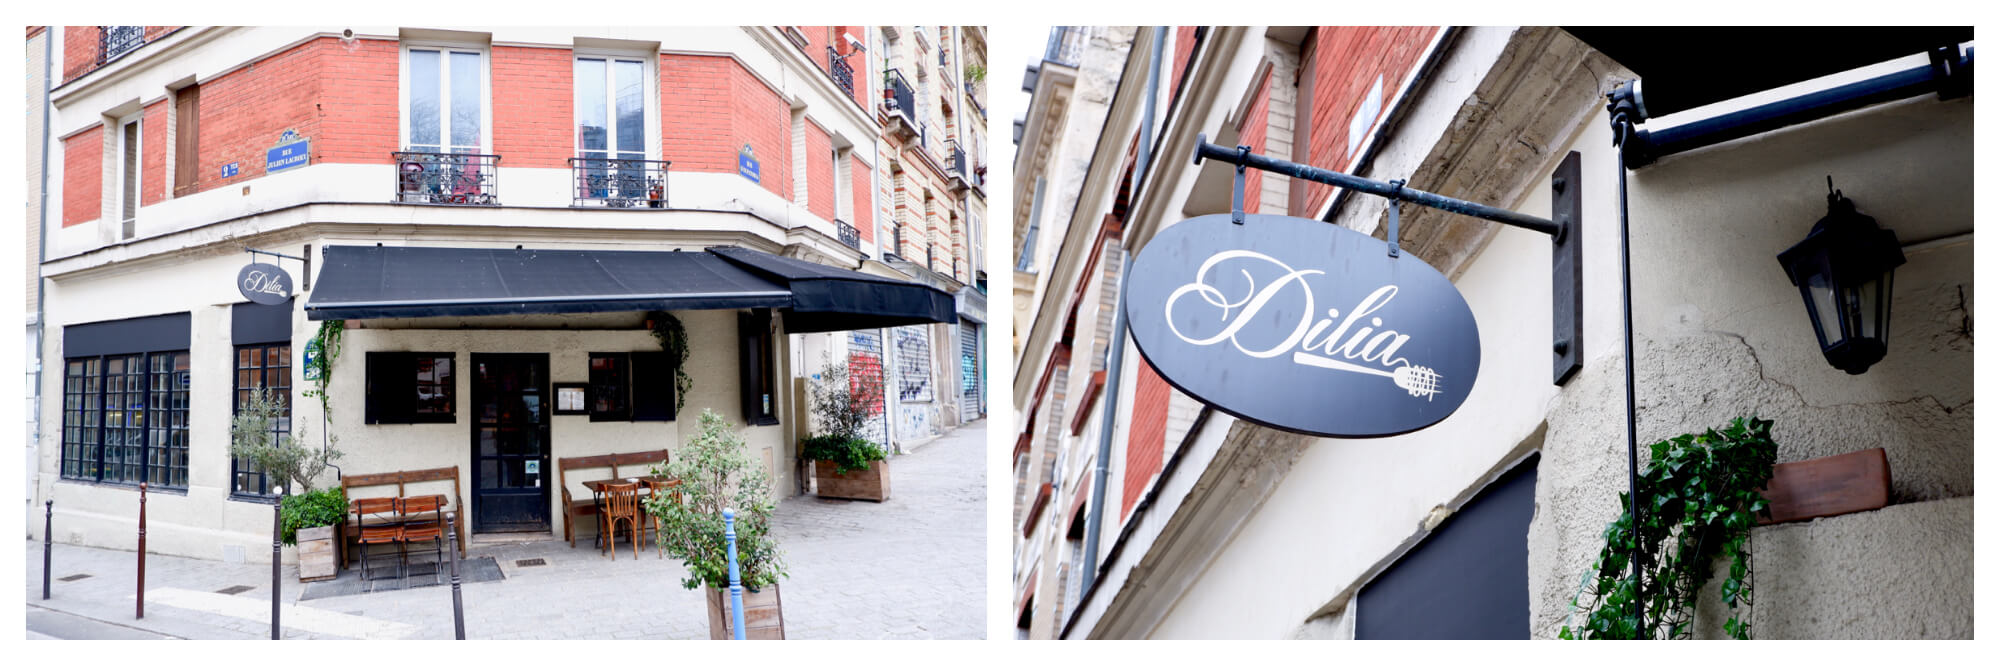 Left: the facade of a restaurant. The window frames and awning are black and there are two wooden tables and chairs on either side of the front door. Right: a close up of the restaurant's sign. The sign is black with the name of the restaurant 'Dilia' written in cursive.